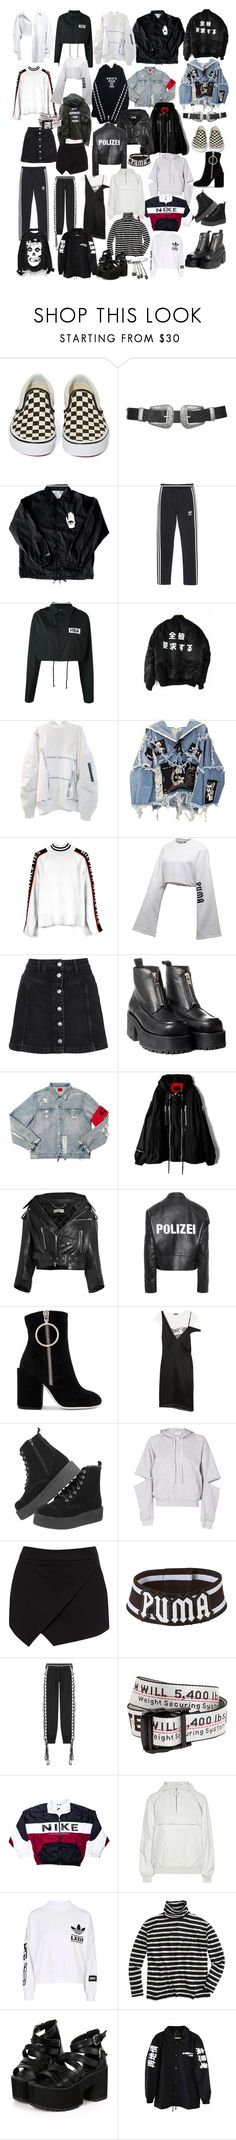 """ :// august"" by lalalalin ❤ liked on Polyvore featuring Vans, Topshop, adidas Originals, Hood by Air, BLK DNM, Tommy Hilfiger, Puma, UNIF, Balenciaga and Vetements"